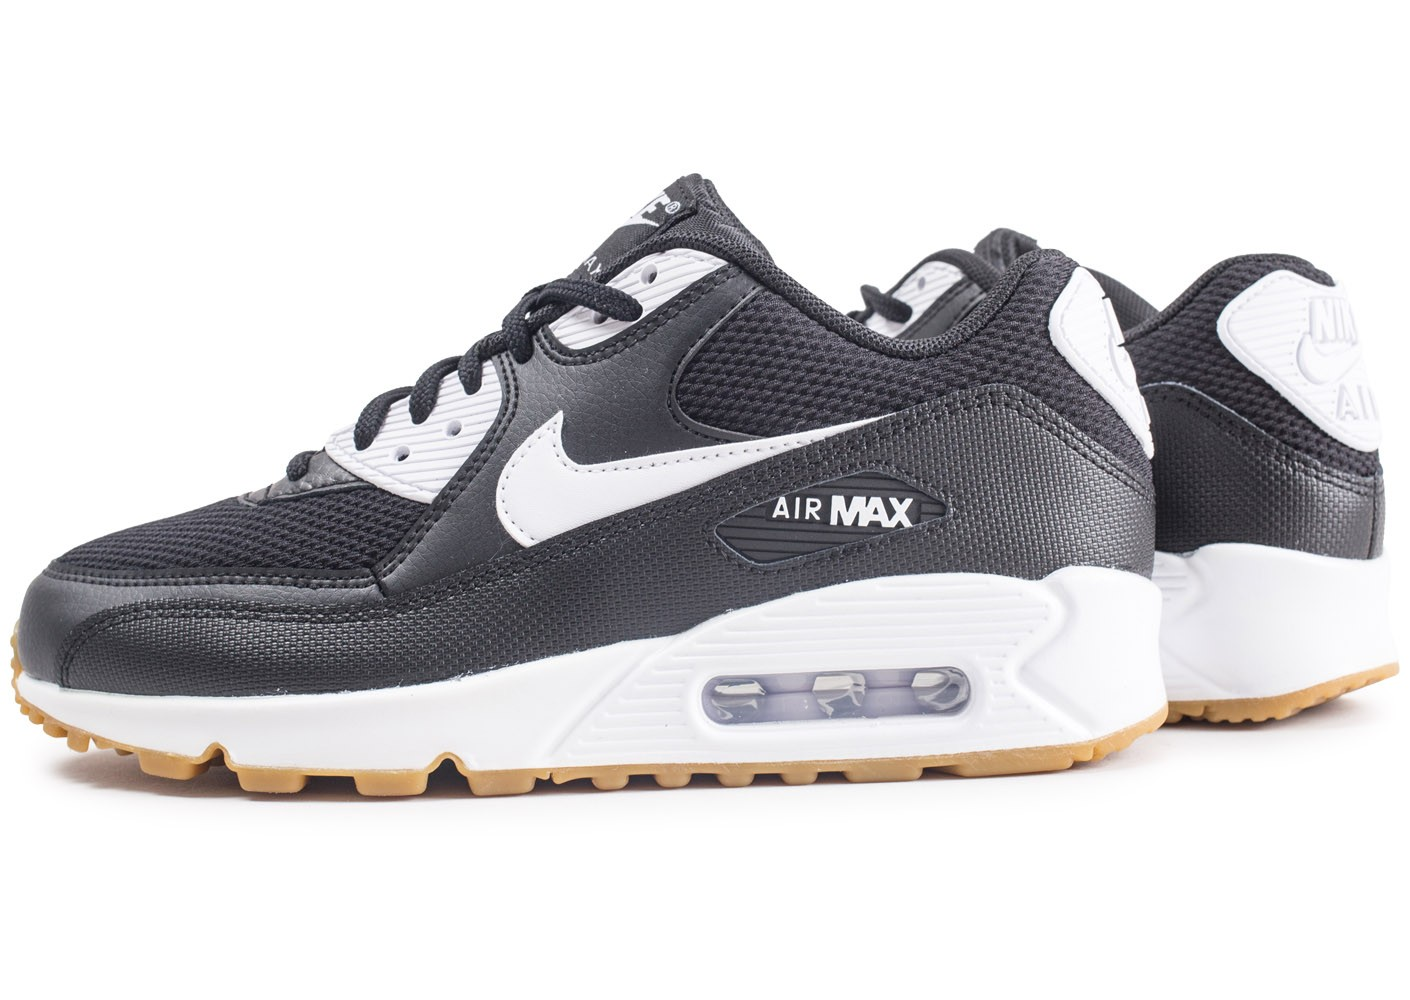 Max 90 Chaussures Et Baskets Blanche Nike Xaxq67w1z Noire